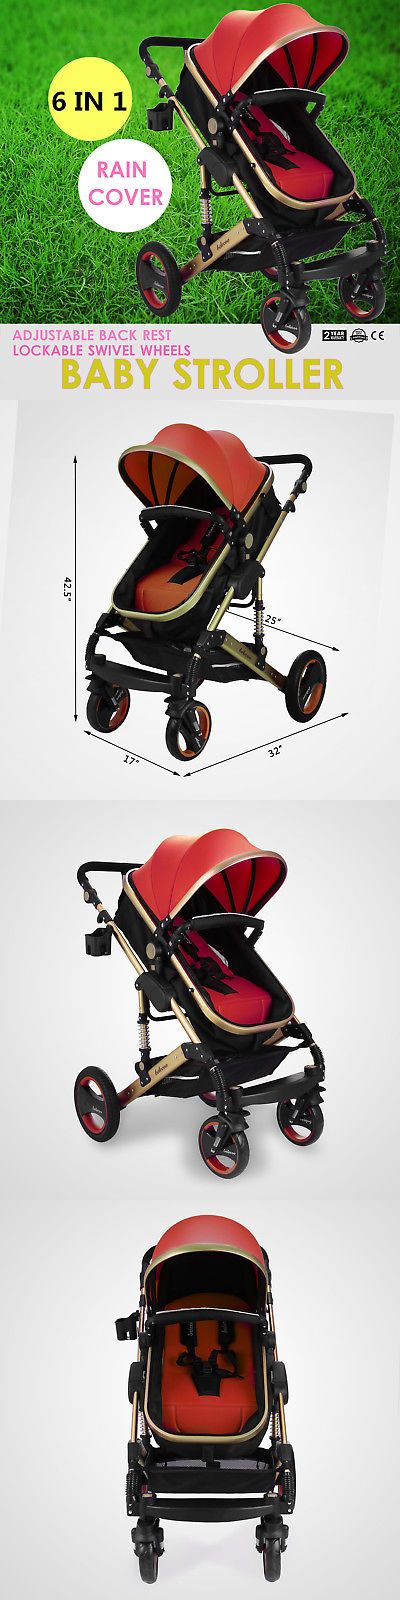 Other Stroller Accessories 180917: New Belecoo Baby Carriage Foldable Travel System Stroller Buggy Pushchair Pram -> BUY IT NOW ONLY: $136 on eBay!